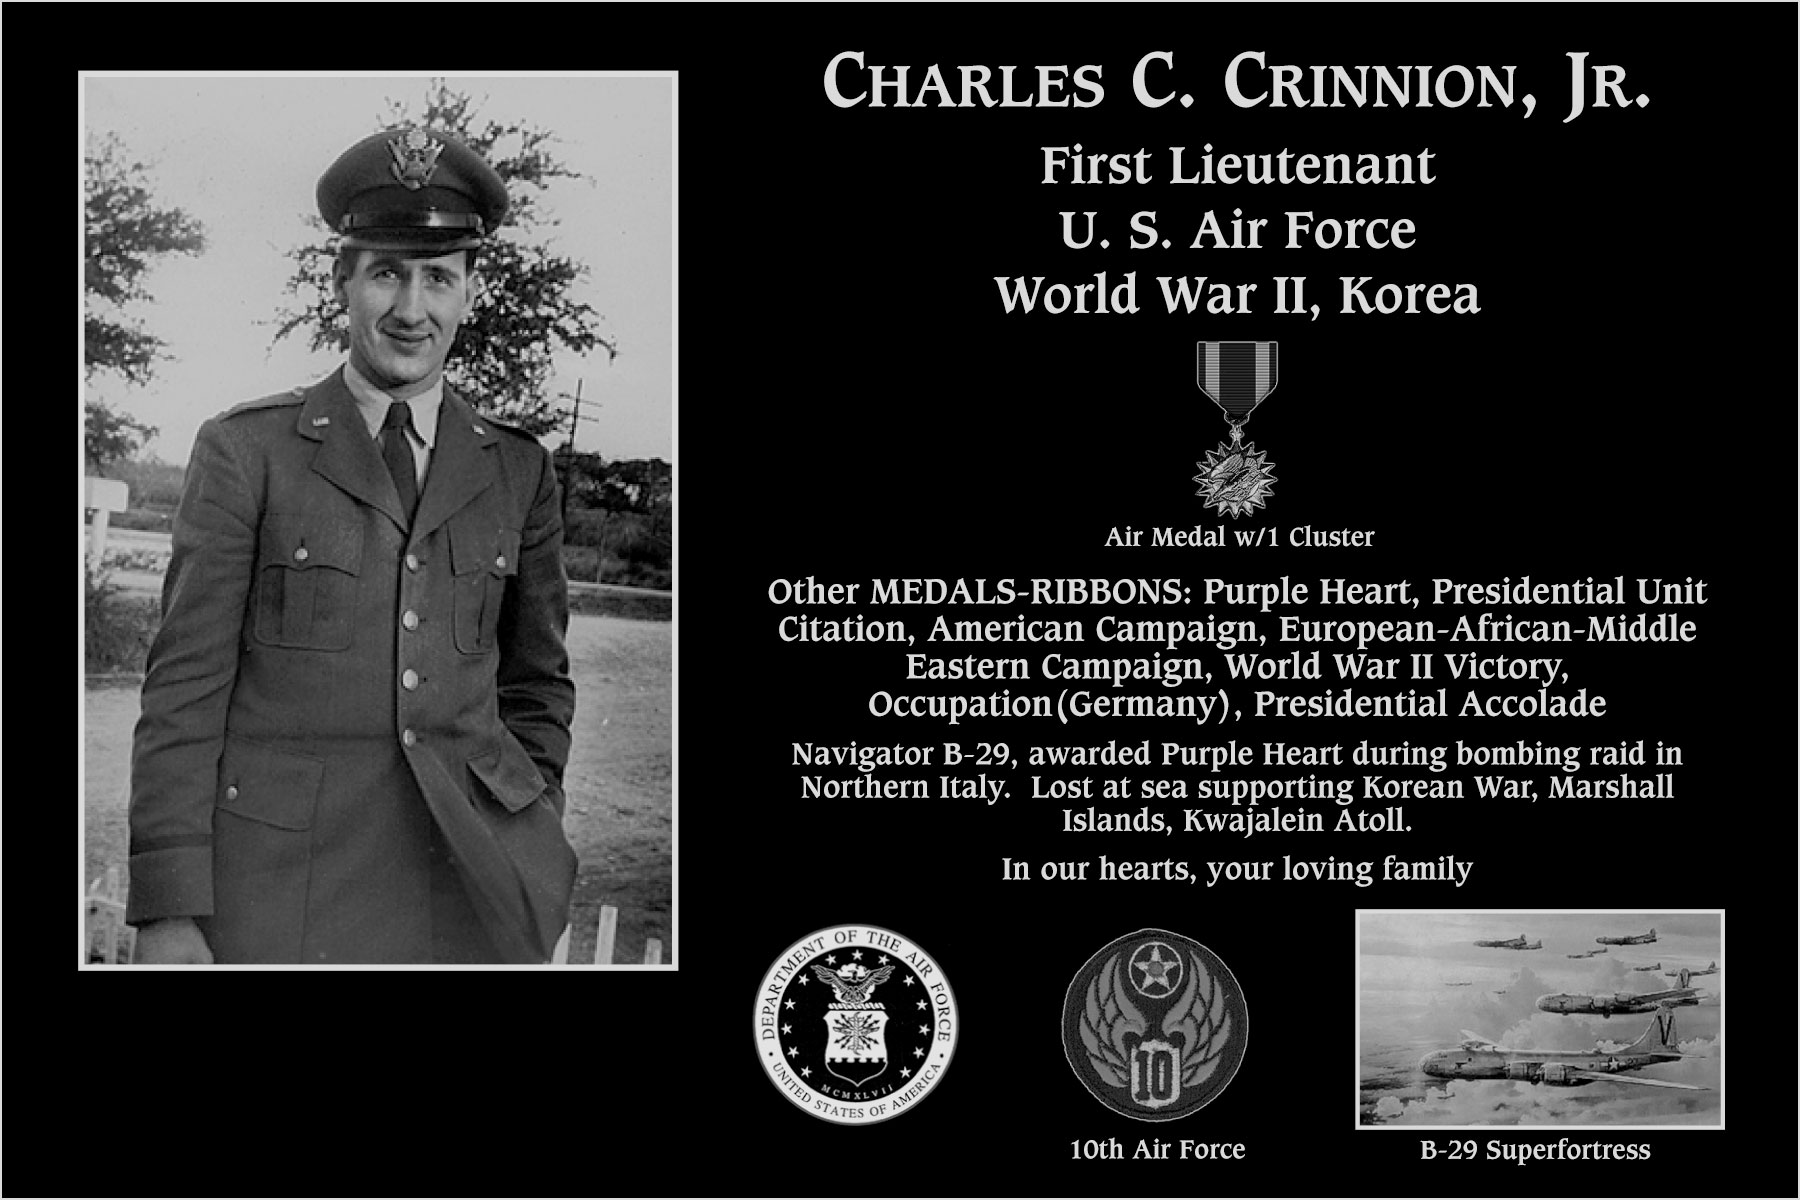 Charles C. Crinnion, Jr.